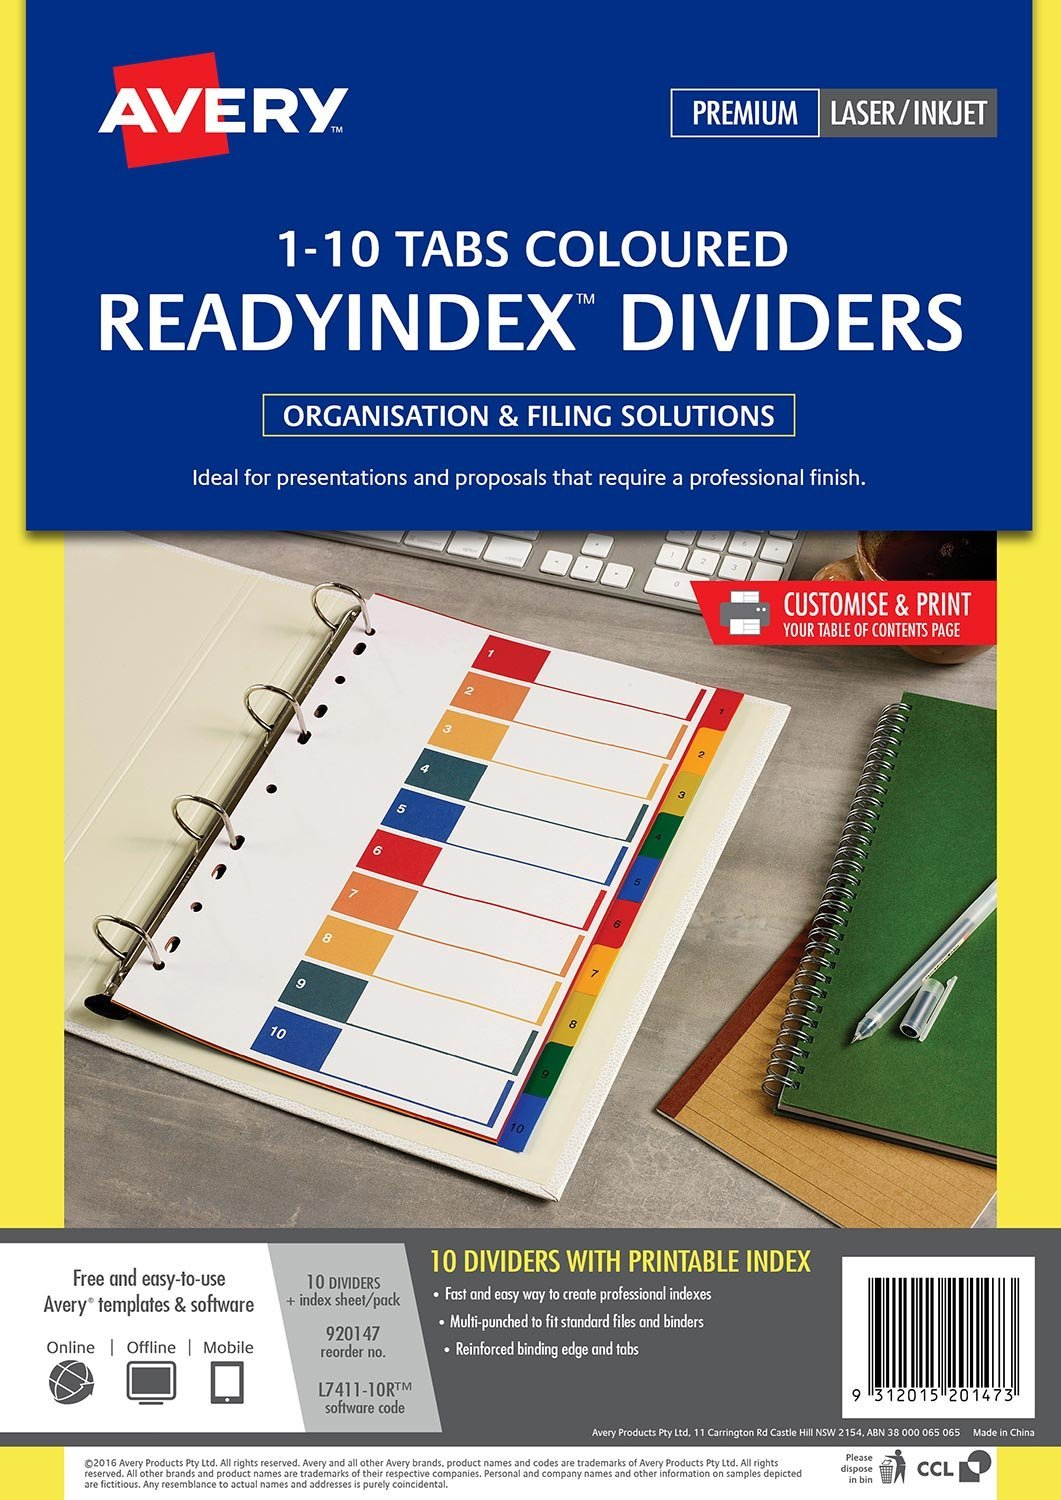 580 Discounted Avery 920147 Divider Ready Index Pp Dividers